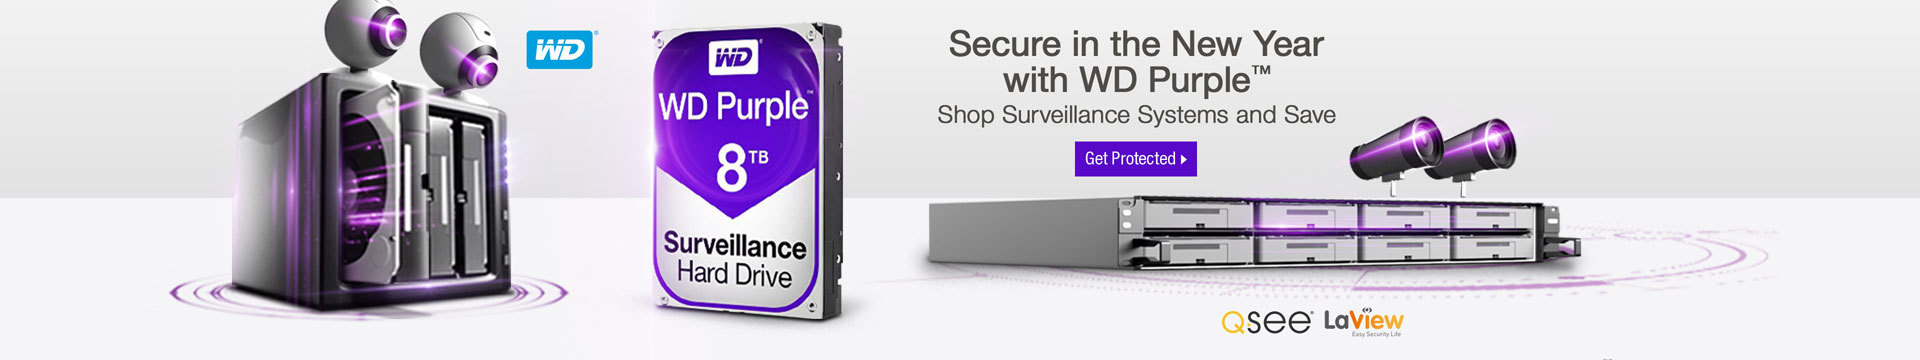 Secure in the New Year with WD Purple